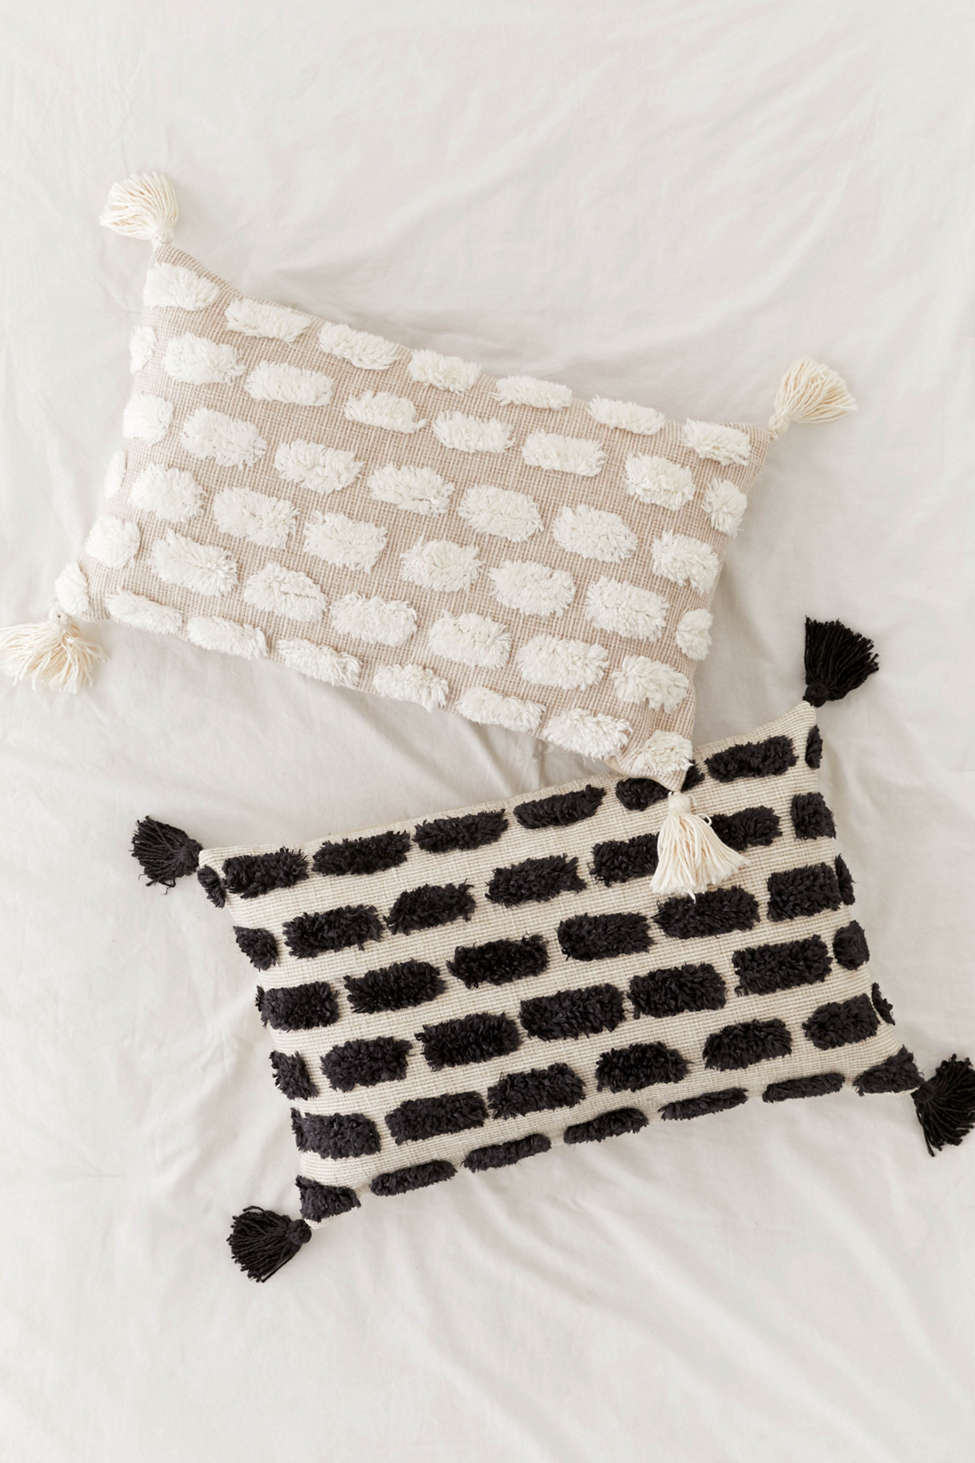 Slide View: 1: Tilly Tufted Tassel Bolster Pillow